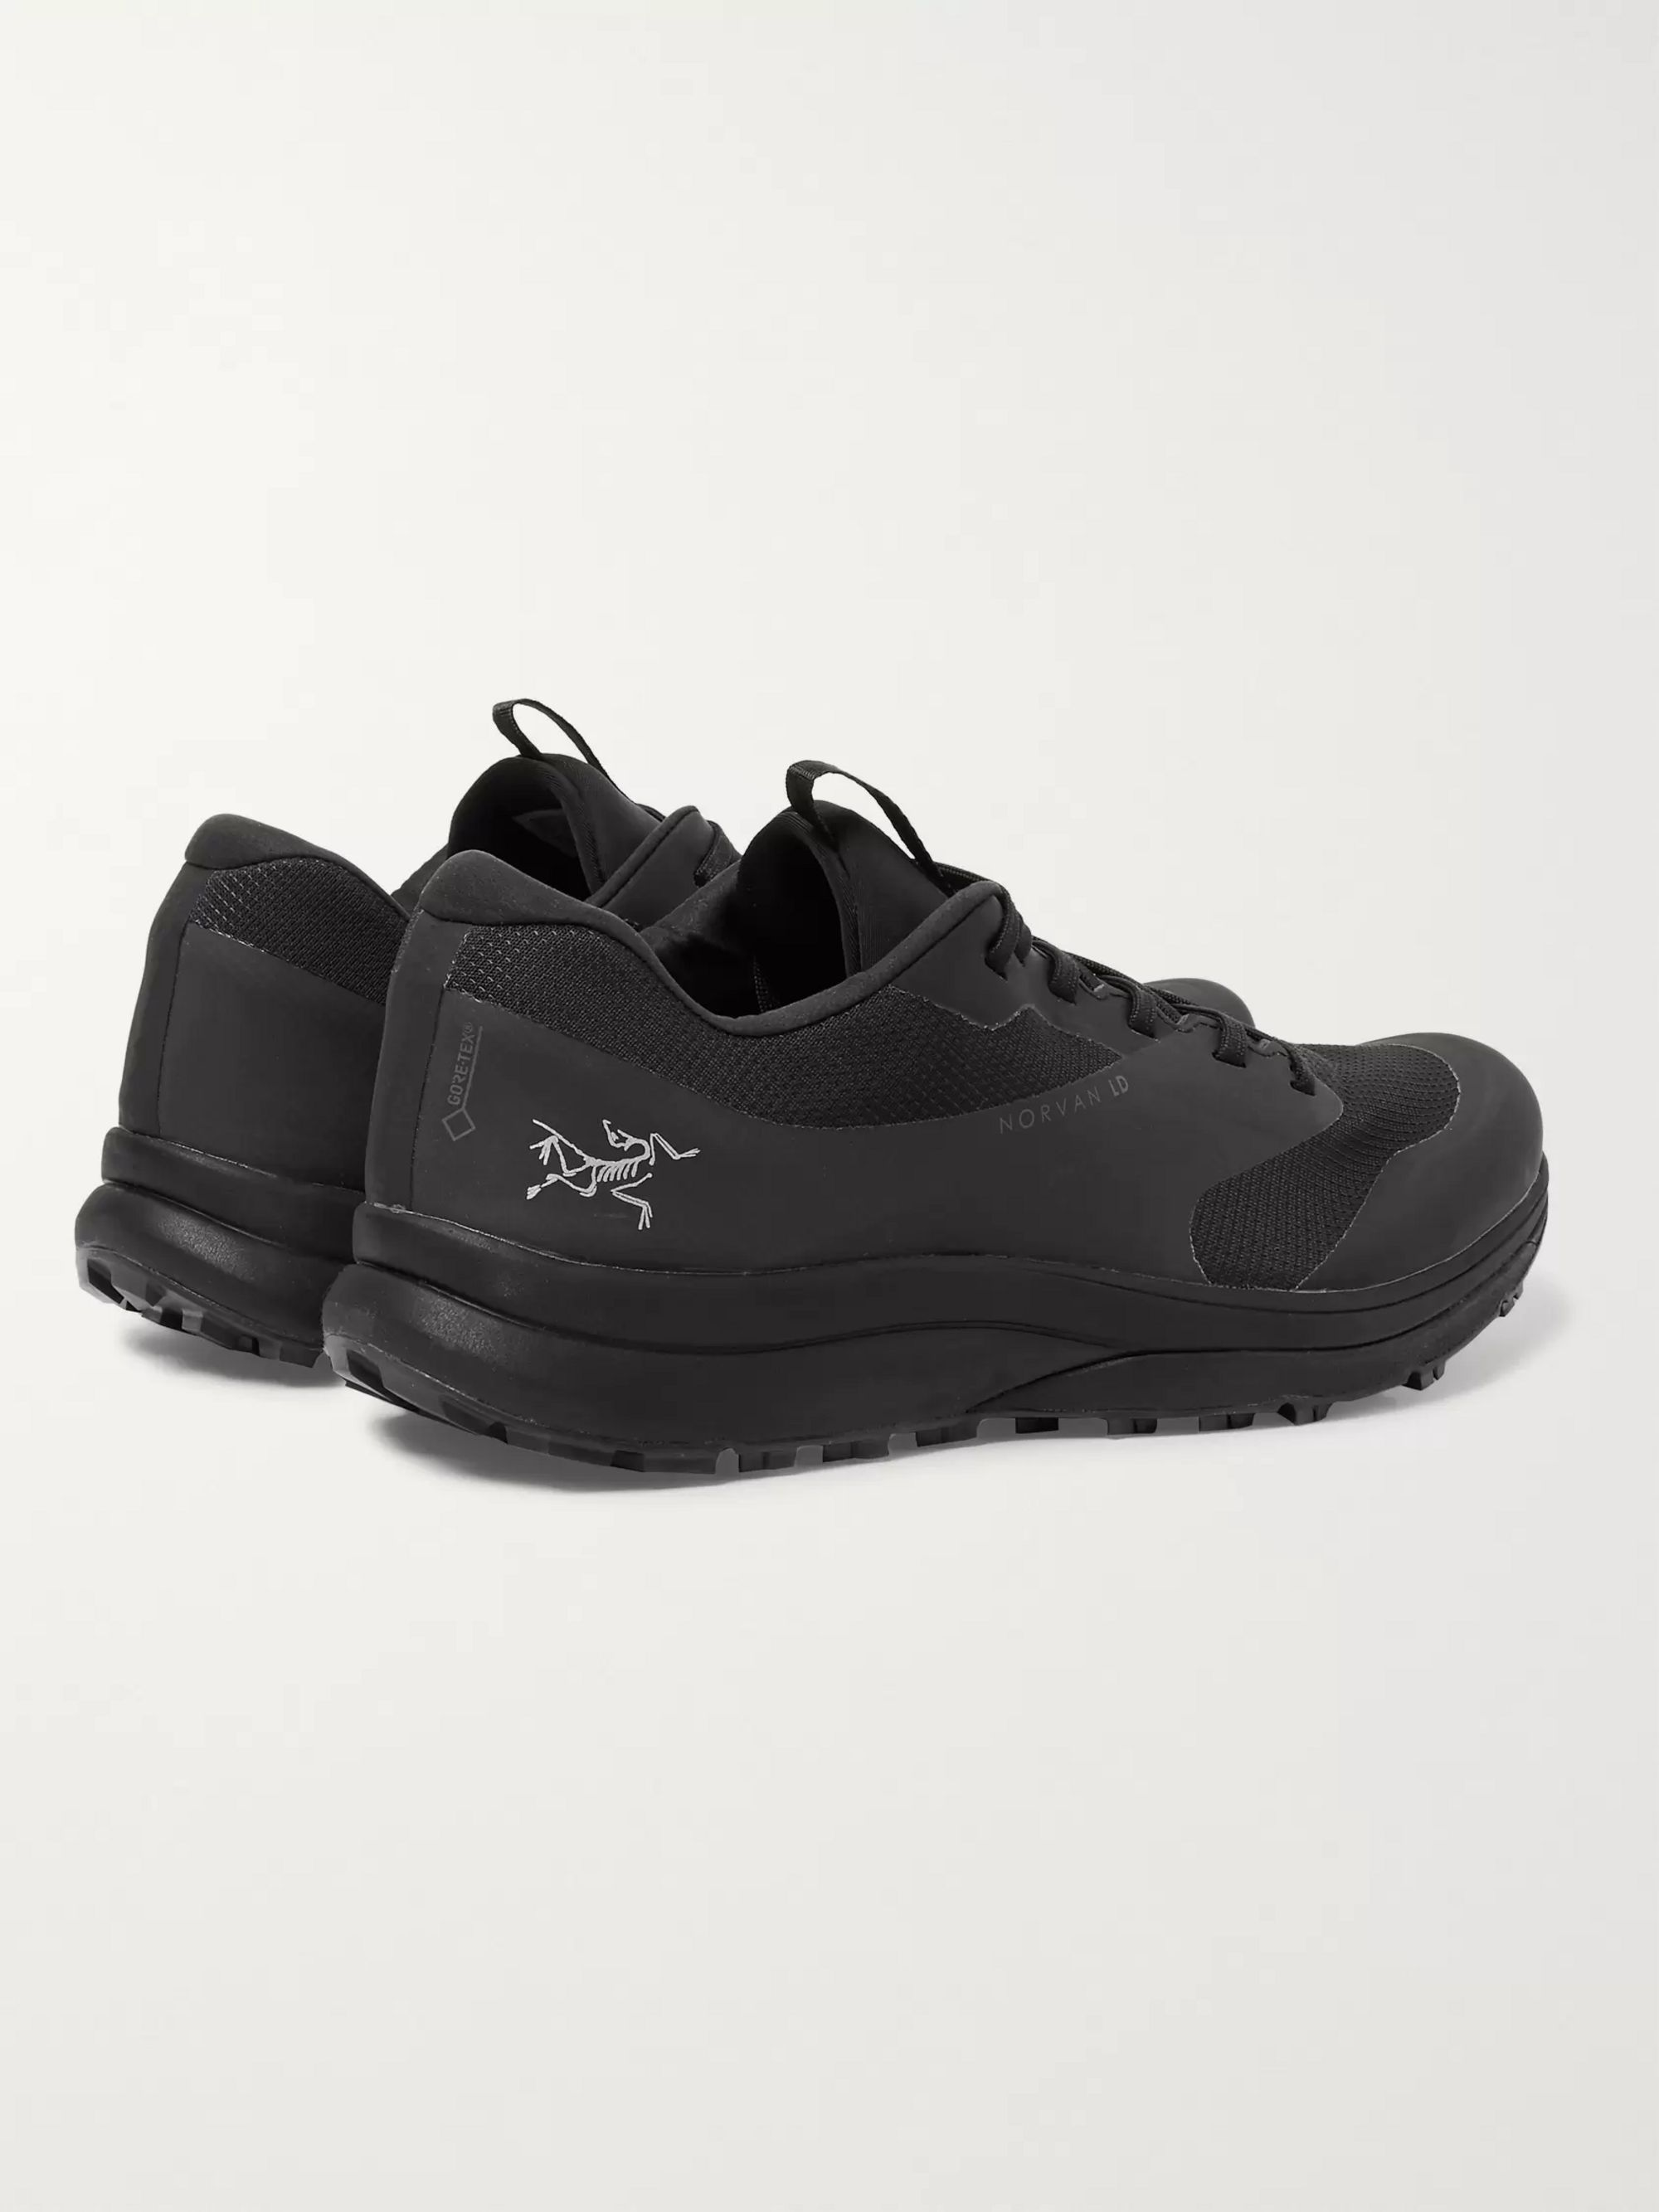 Arc'teryx Norvan LD GORE-TEX and Mesh Running Sneakers